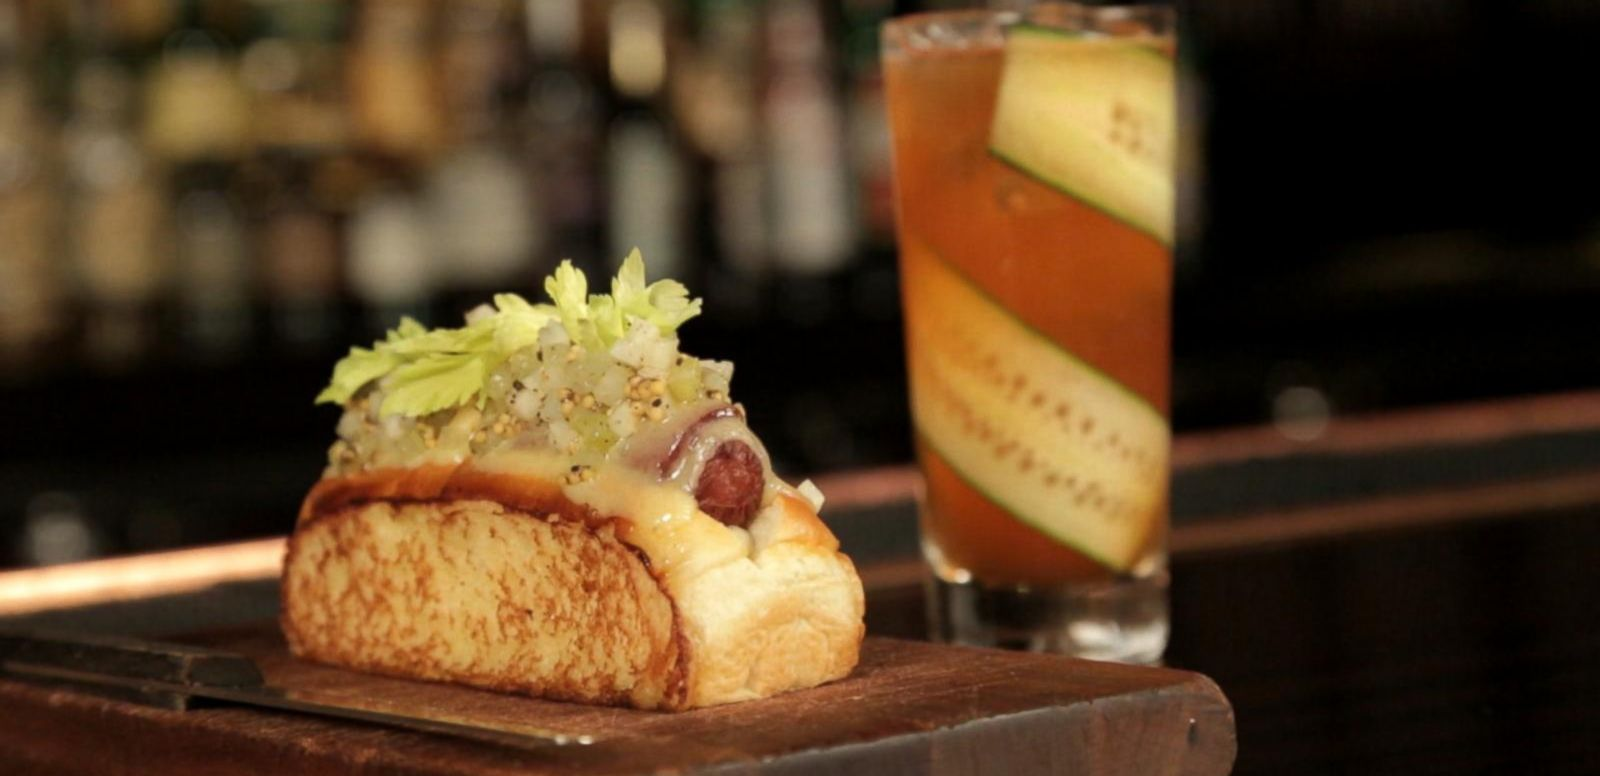 VIDEO: This 16 Dollar Hot Dog is No Ball Park Frank